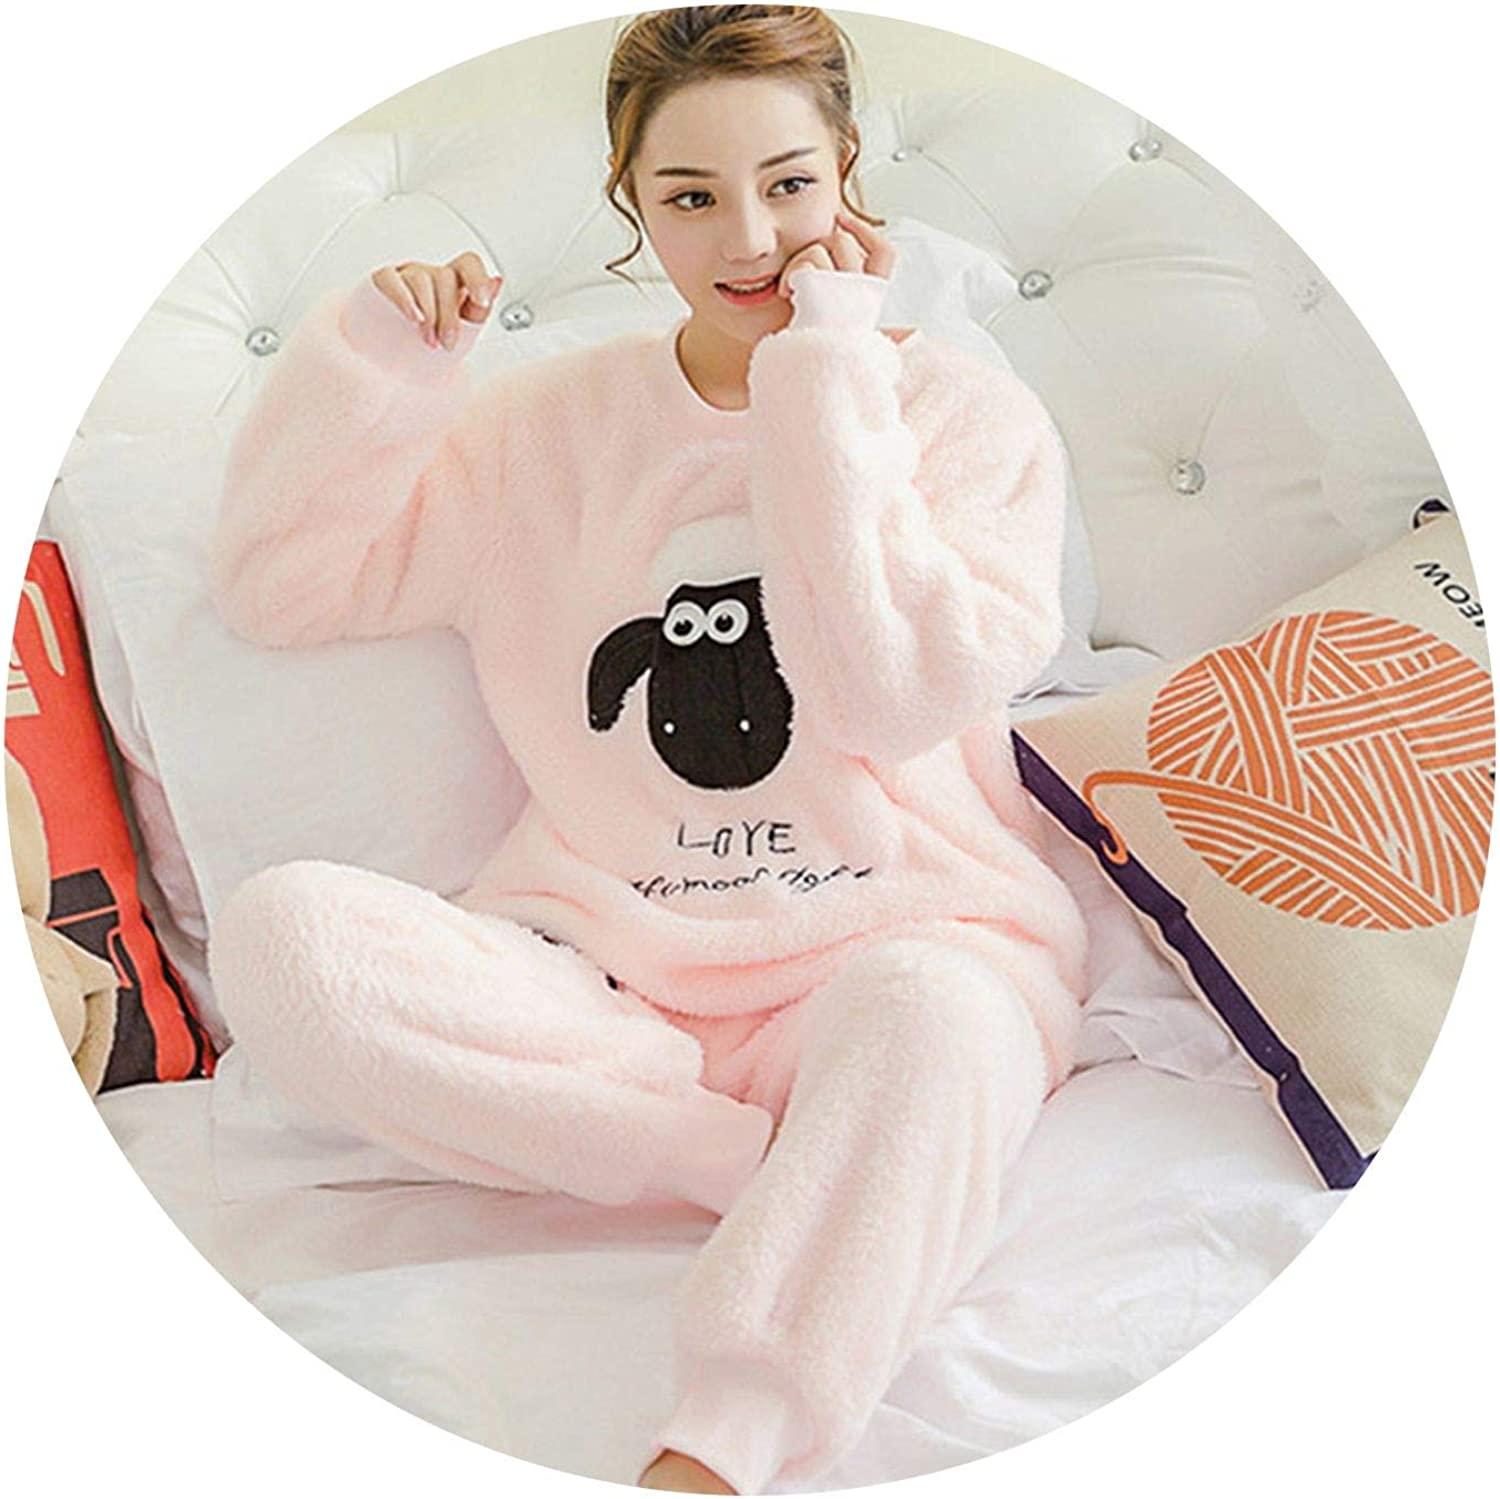 pursuit-of-self-Sleepwear Dress Women Pajama Sets Flannel Long Sleeved Pant Suit